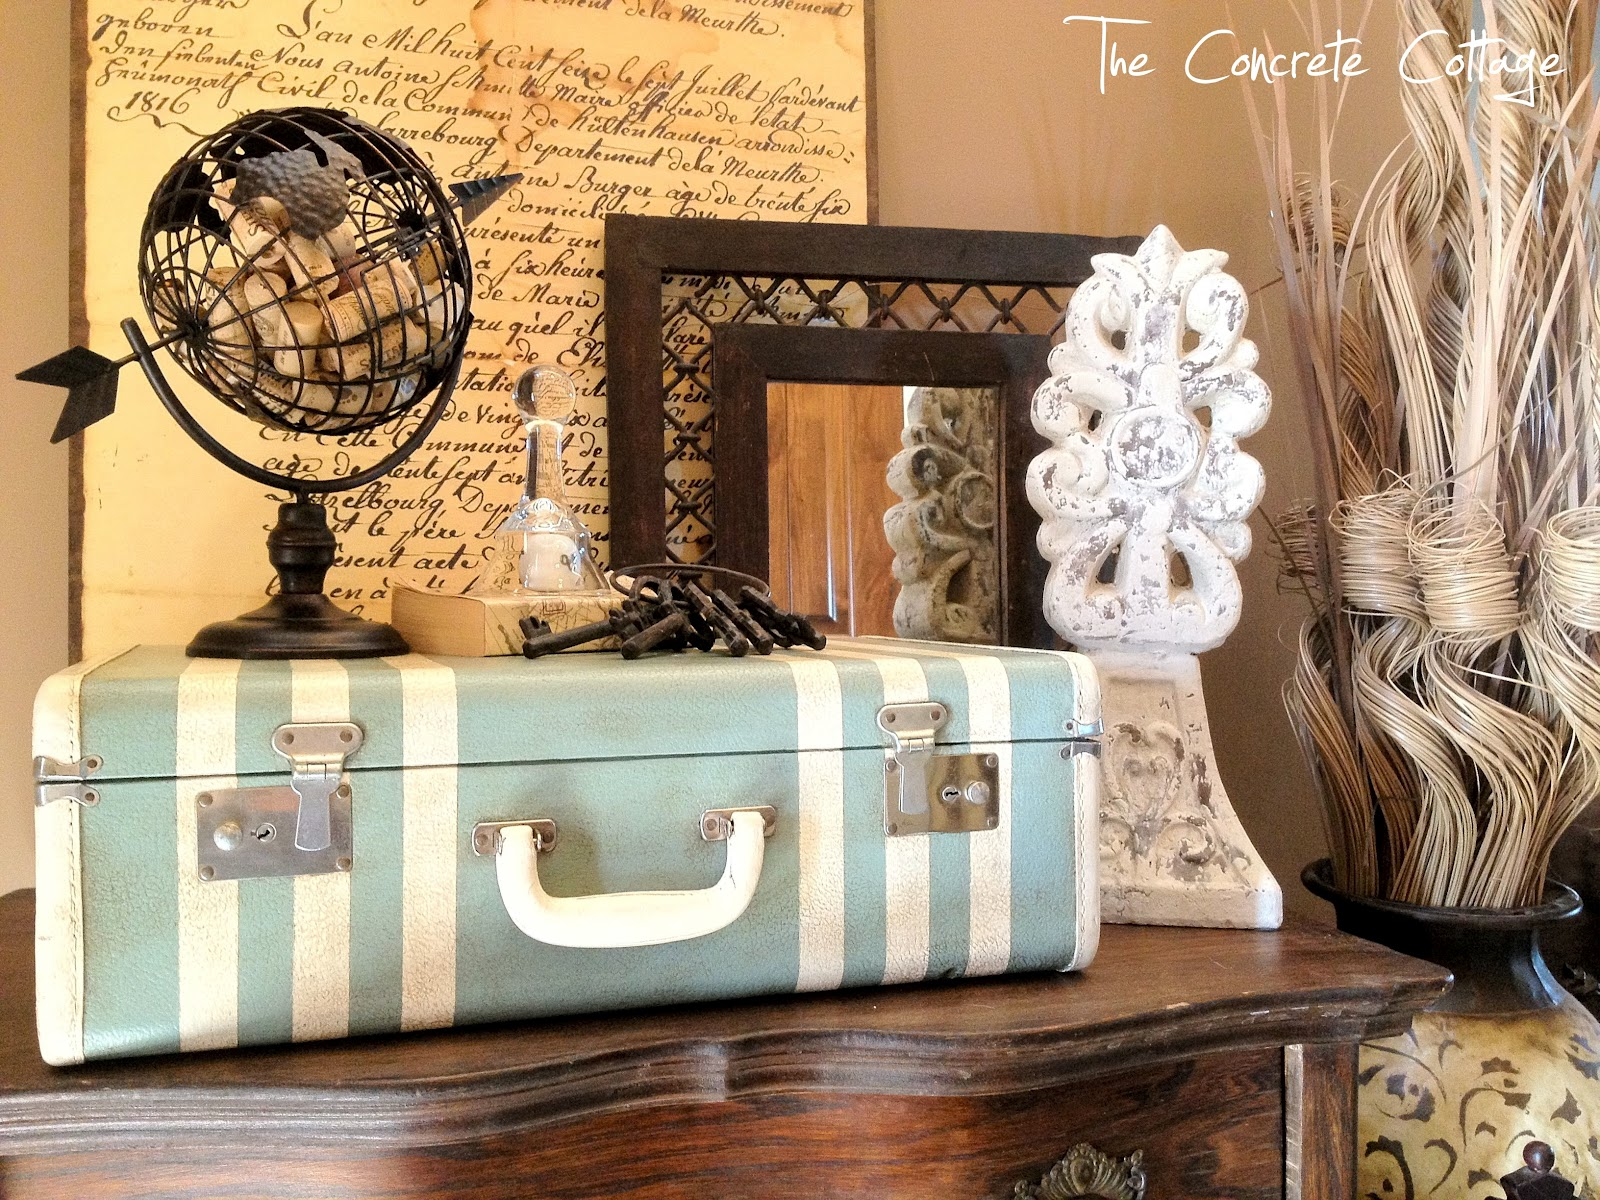 The concrete cottage have suitcase will travel or - Decoracion vintage de interiores ...